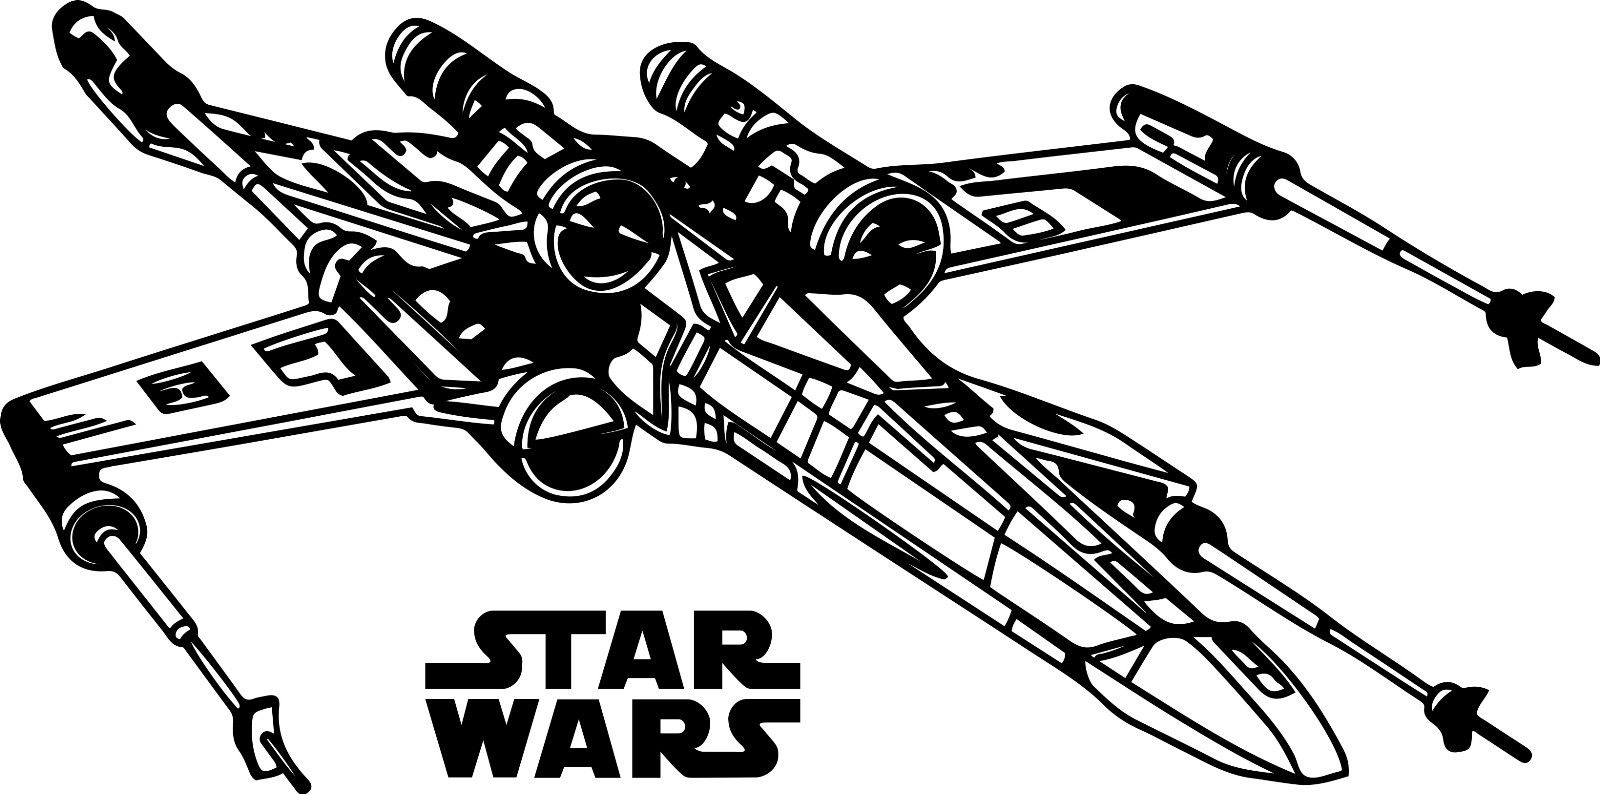 Star Wars X Wing Clipart likewise 222137567657 additionally Hello Kitty Face Coloring Pages Template moreover Harry Potter Logo Symbol 40314866 also 21 Seriously Funny Exam Answers. on harry potter car clip art